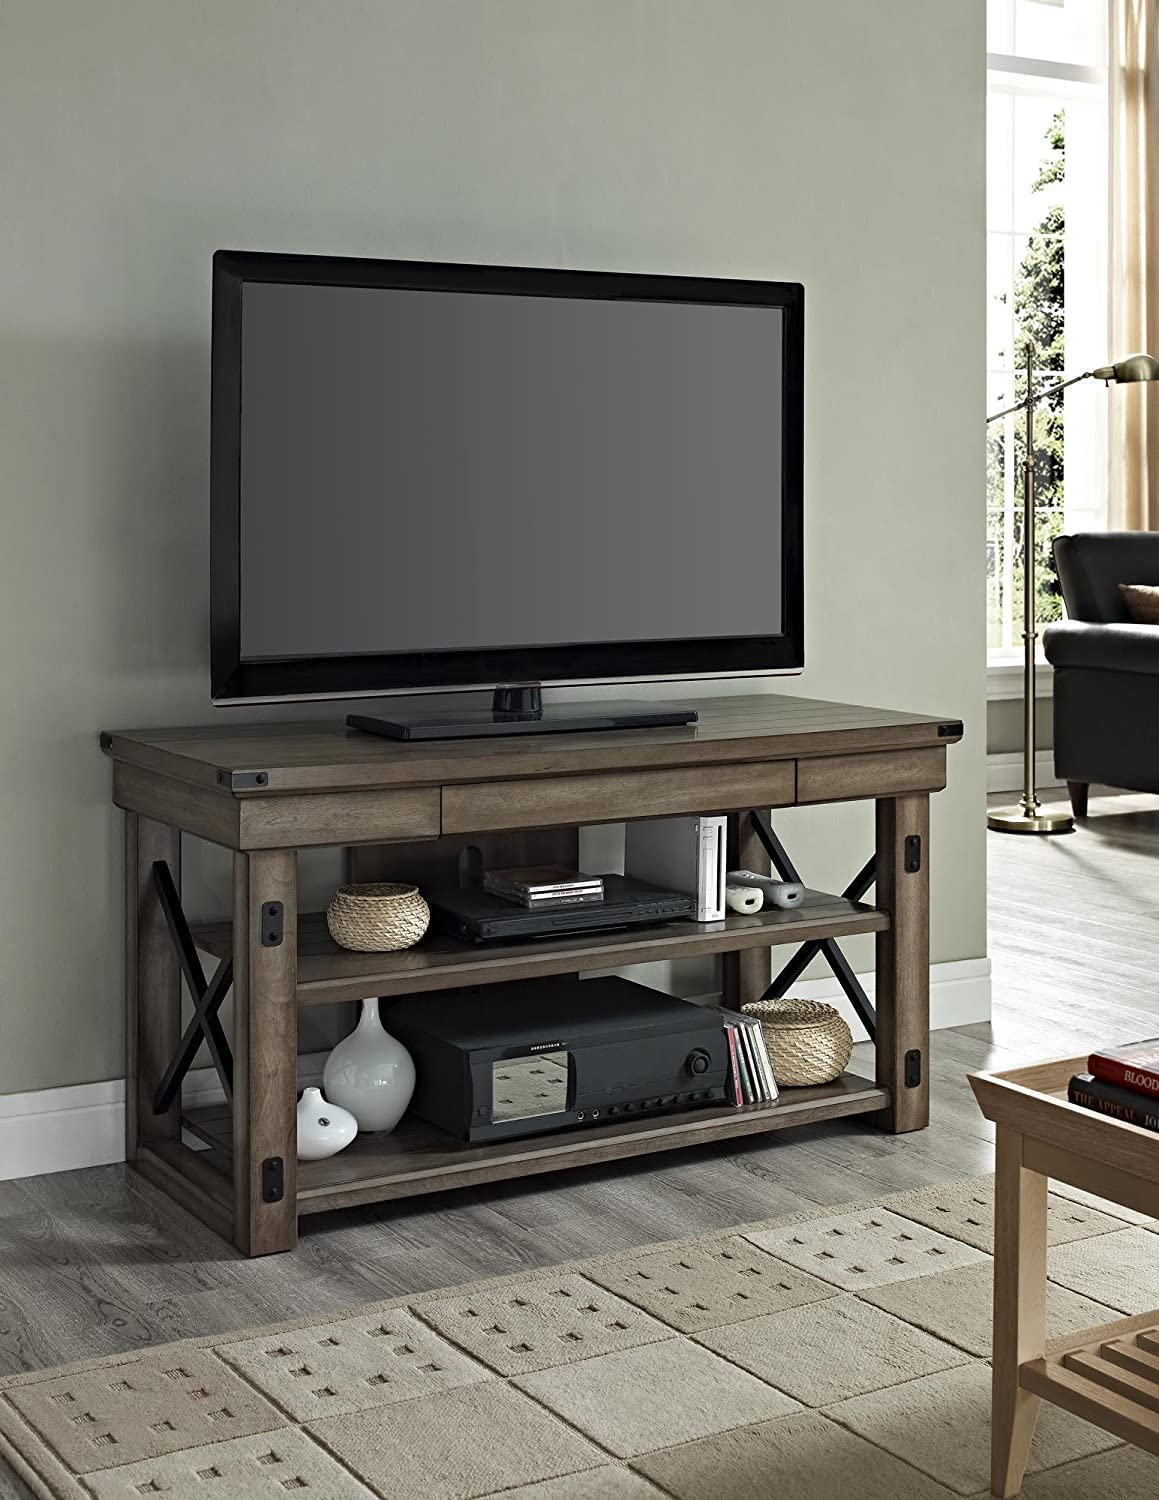 amazon com ameriwood home wildwood wood veneer tv stand for tvs